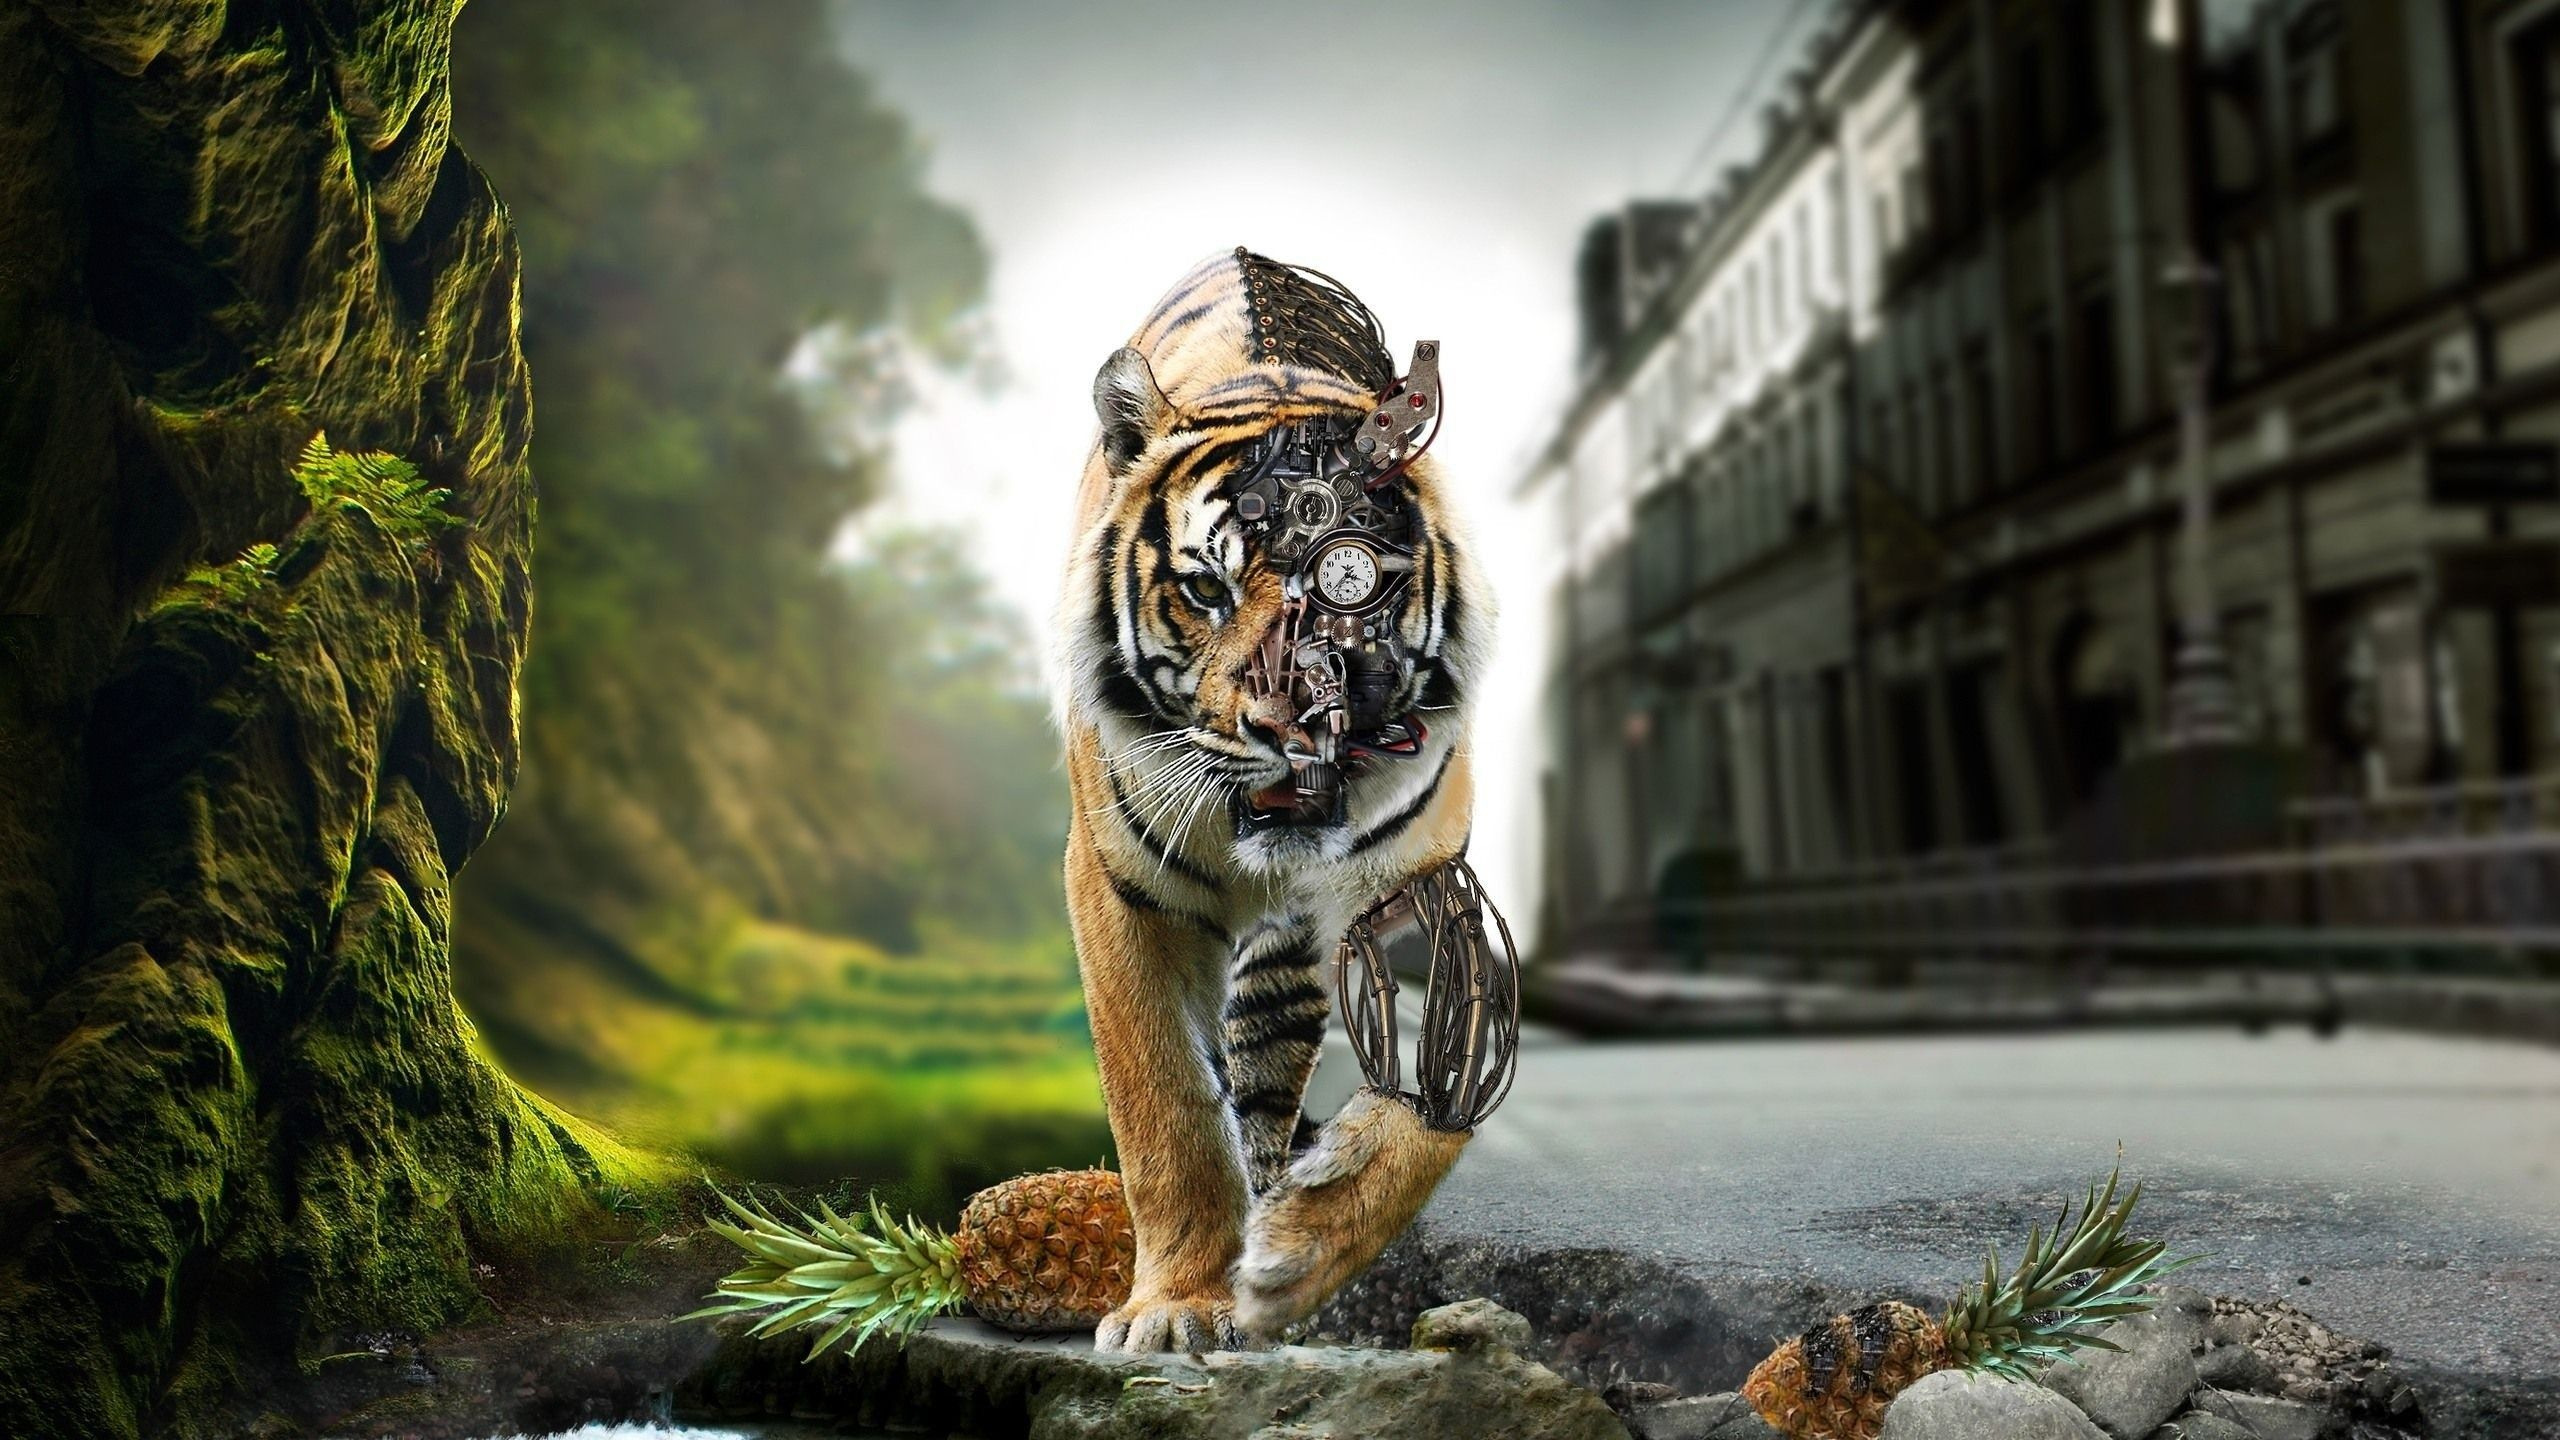 Mechanical Tiger 2560 X 1440 Tiger Wallpaper Lion Wallpaper